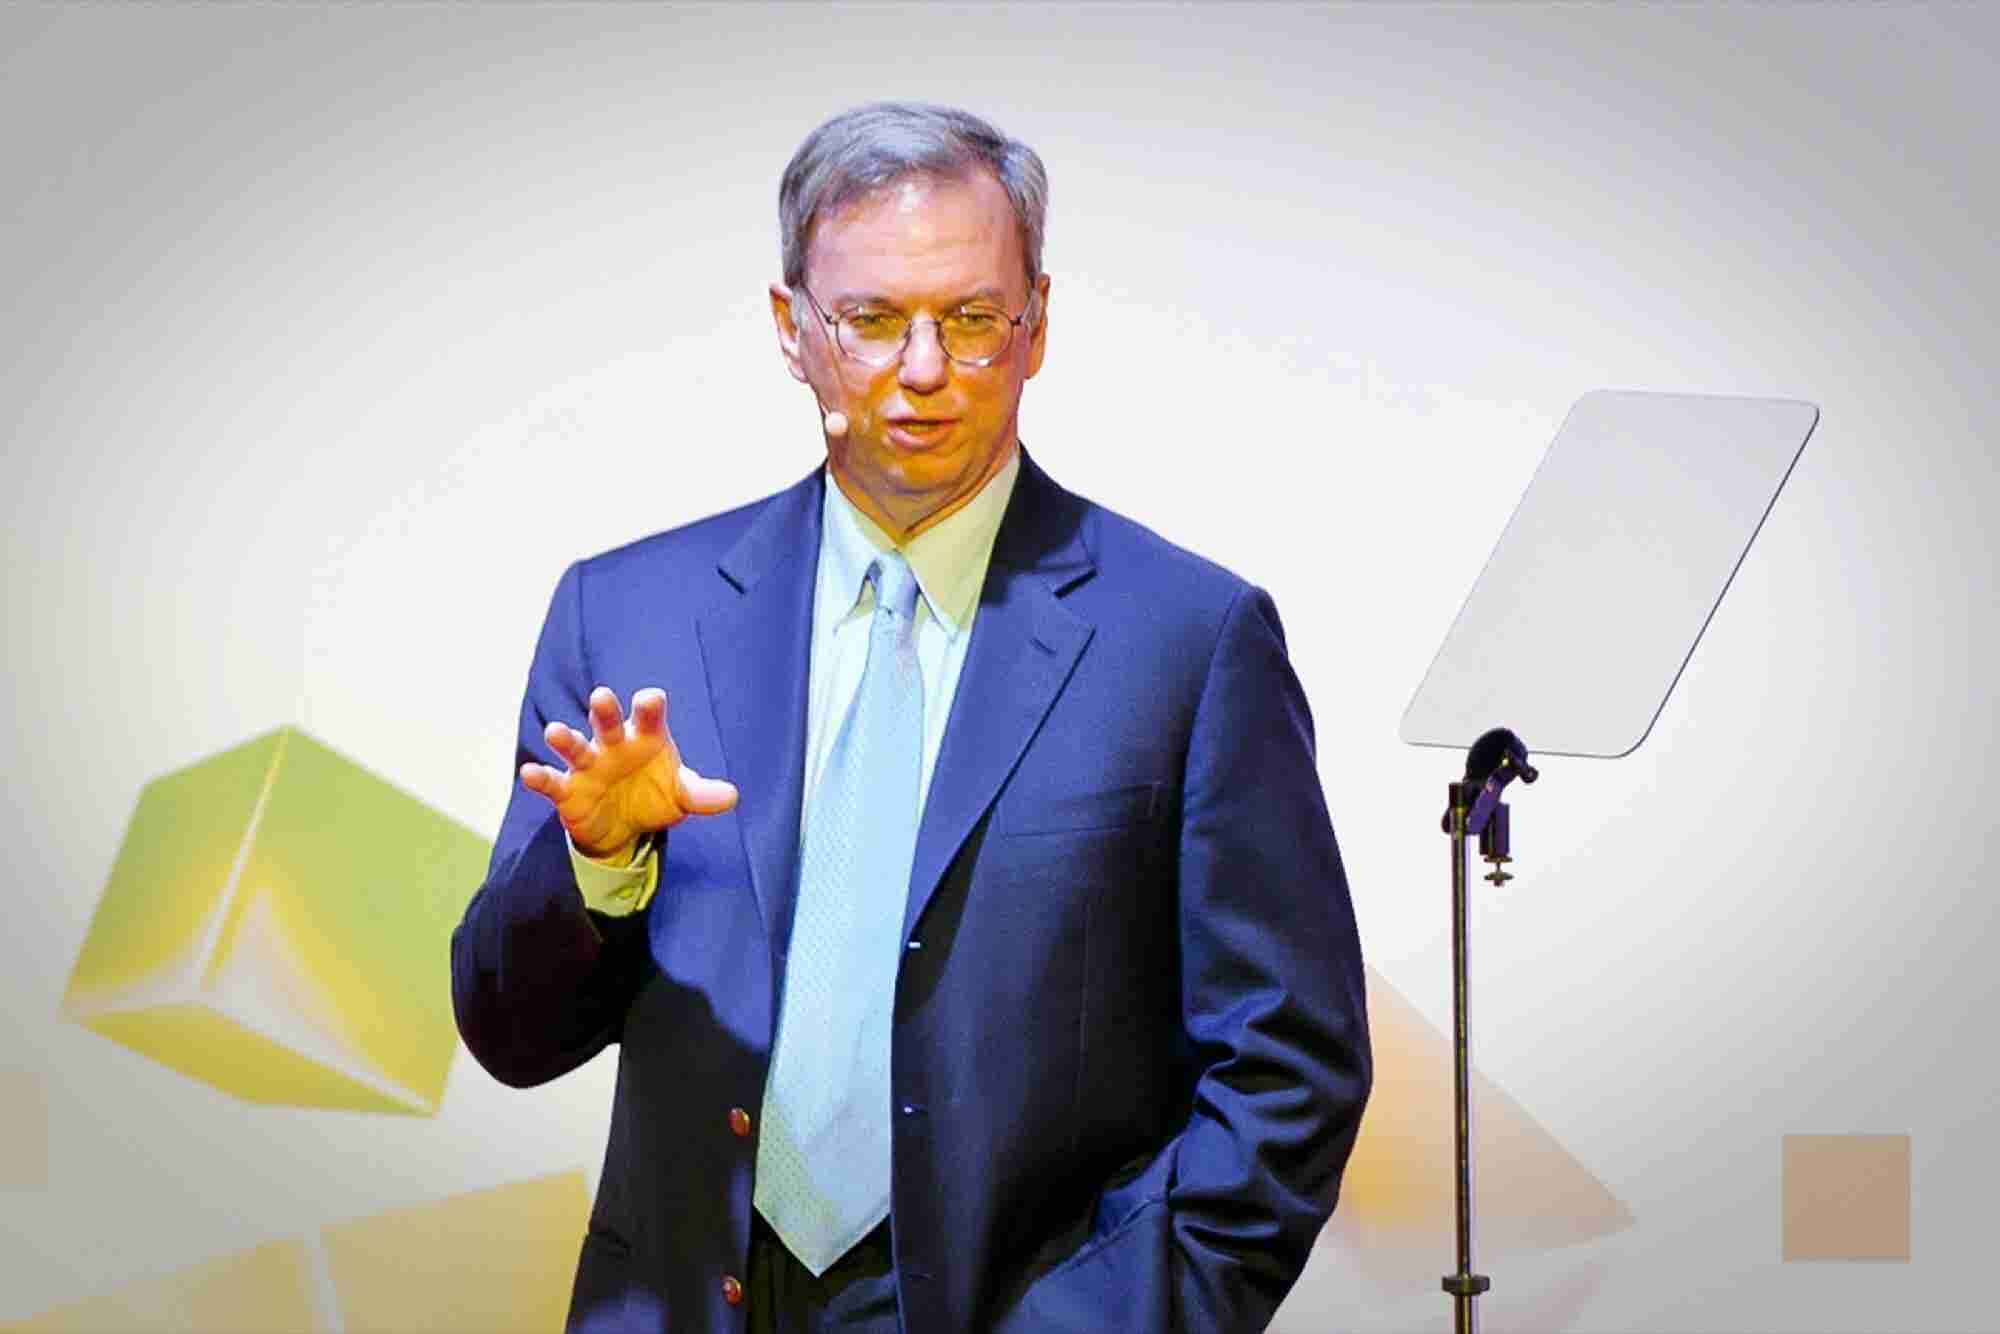 Alphabet's Eric Schmidt: Gmail Is 'Far More Secure' Than Government Systems